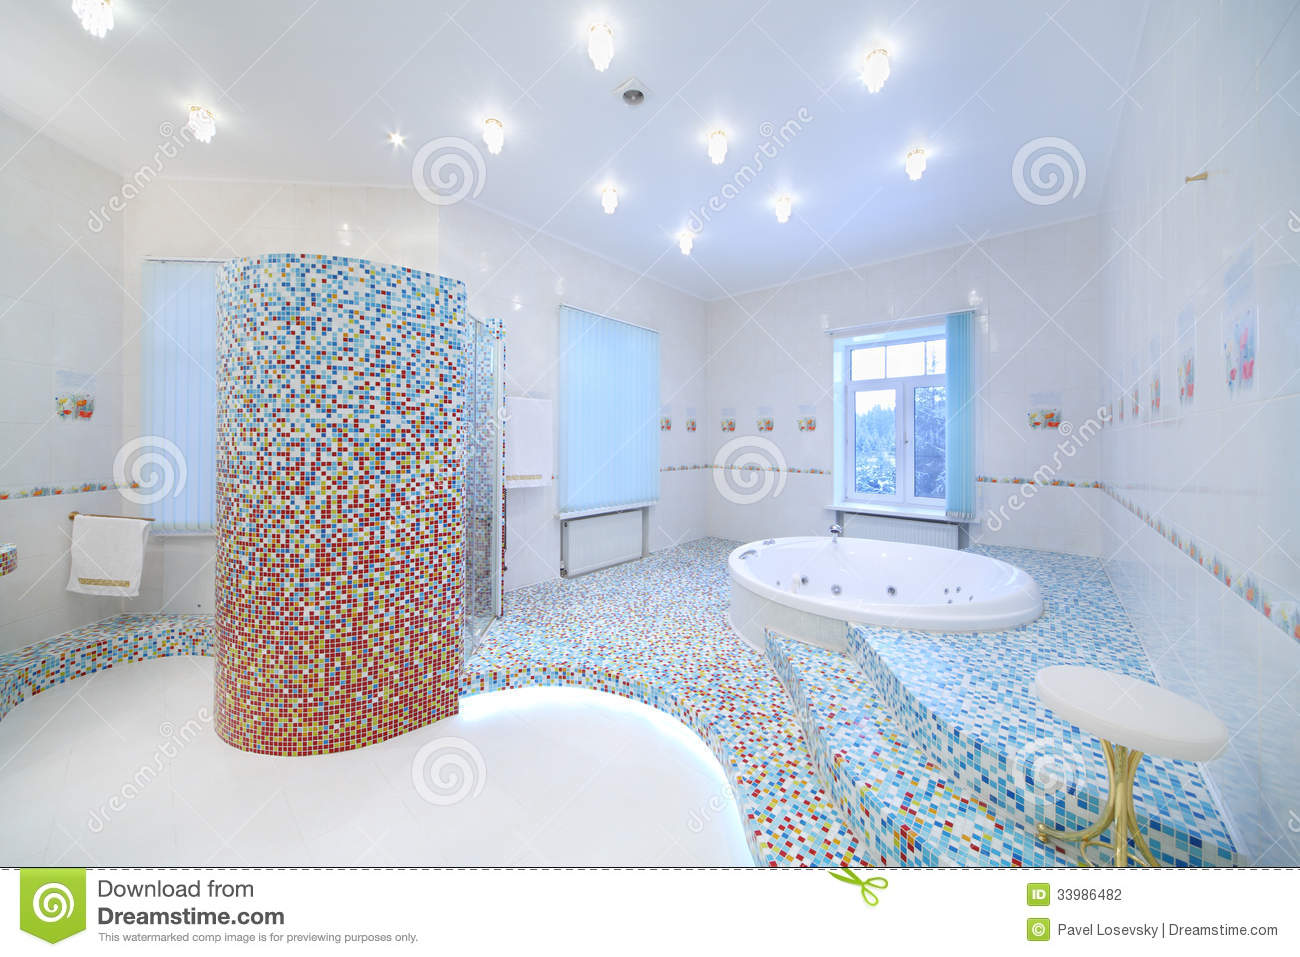 Light And Clean Bathroom With Jacuzzi And Shower Cabin